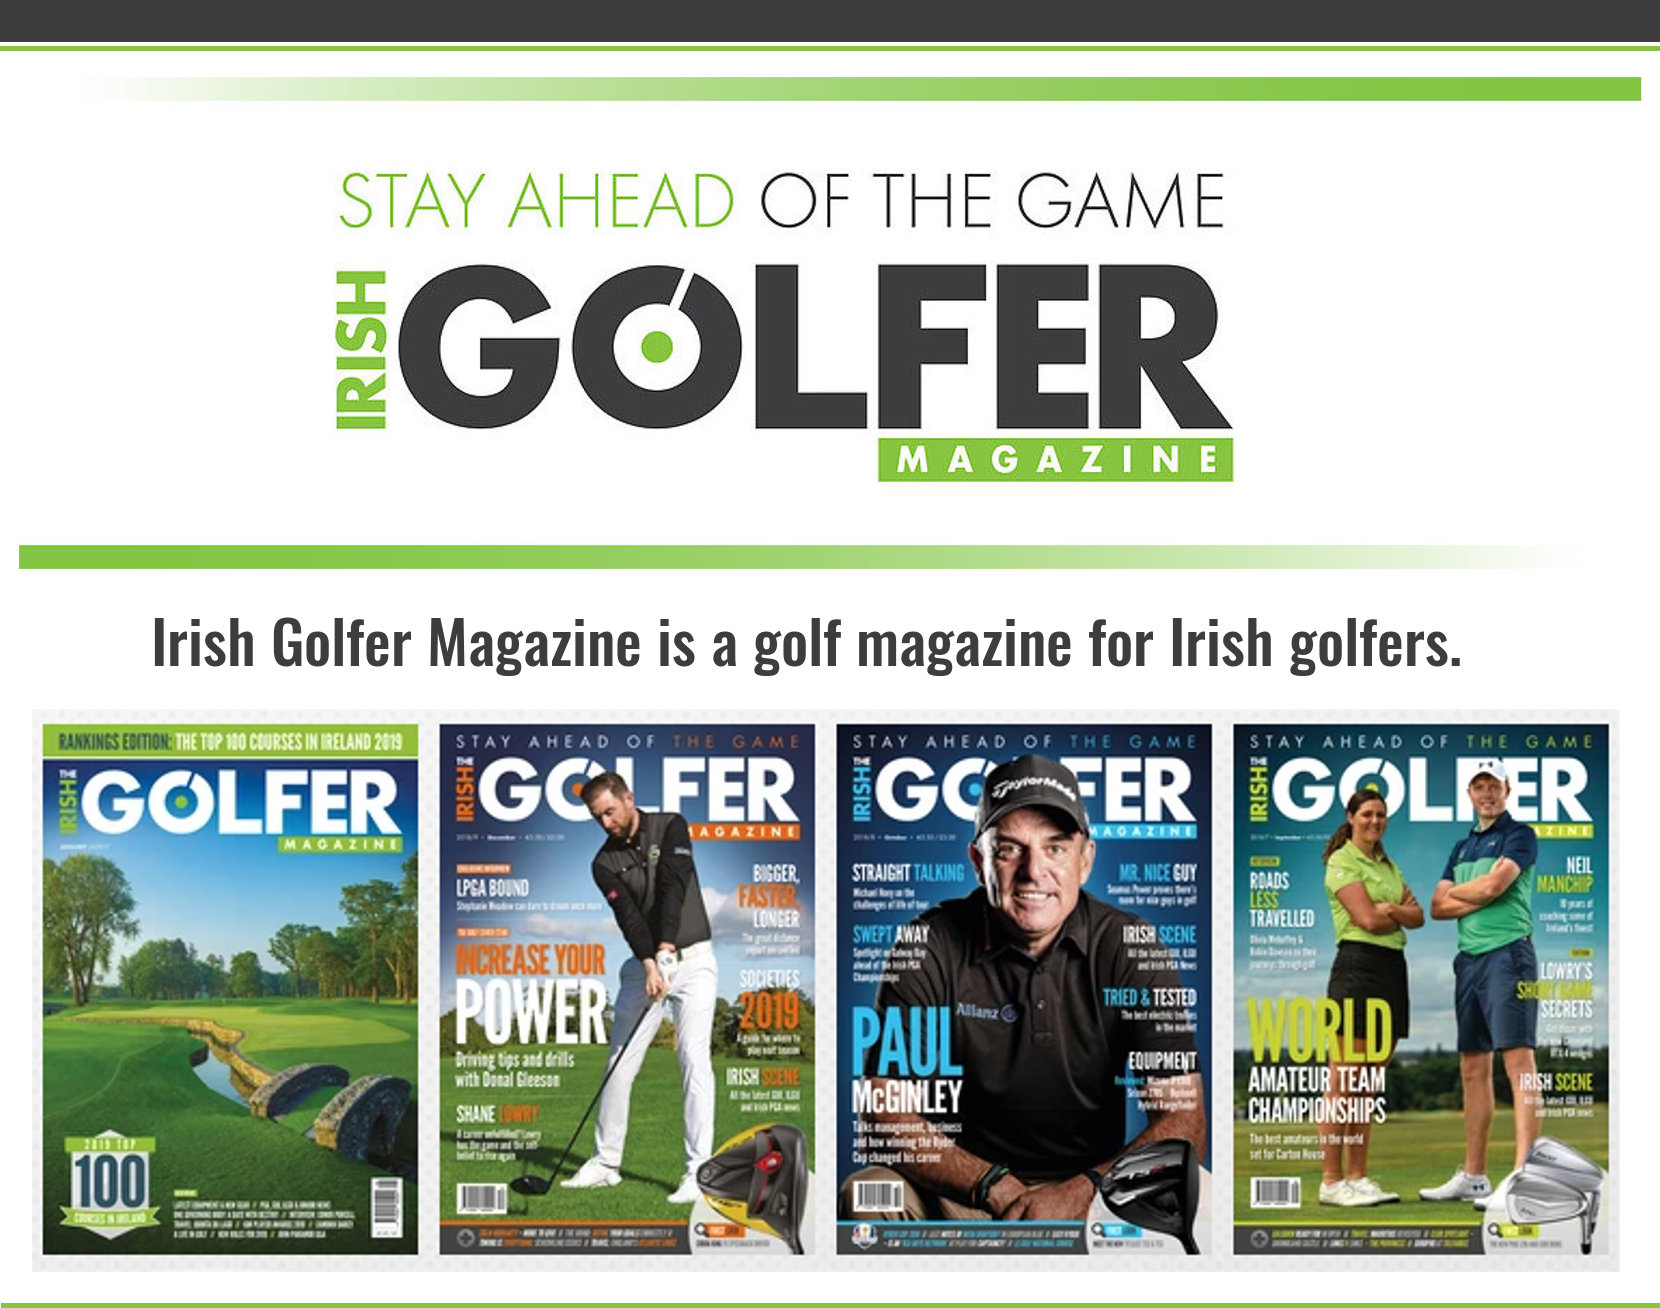 Irish Golfer Magazine